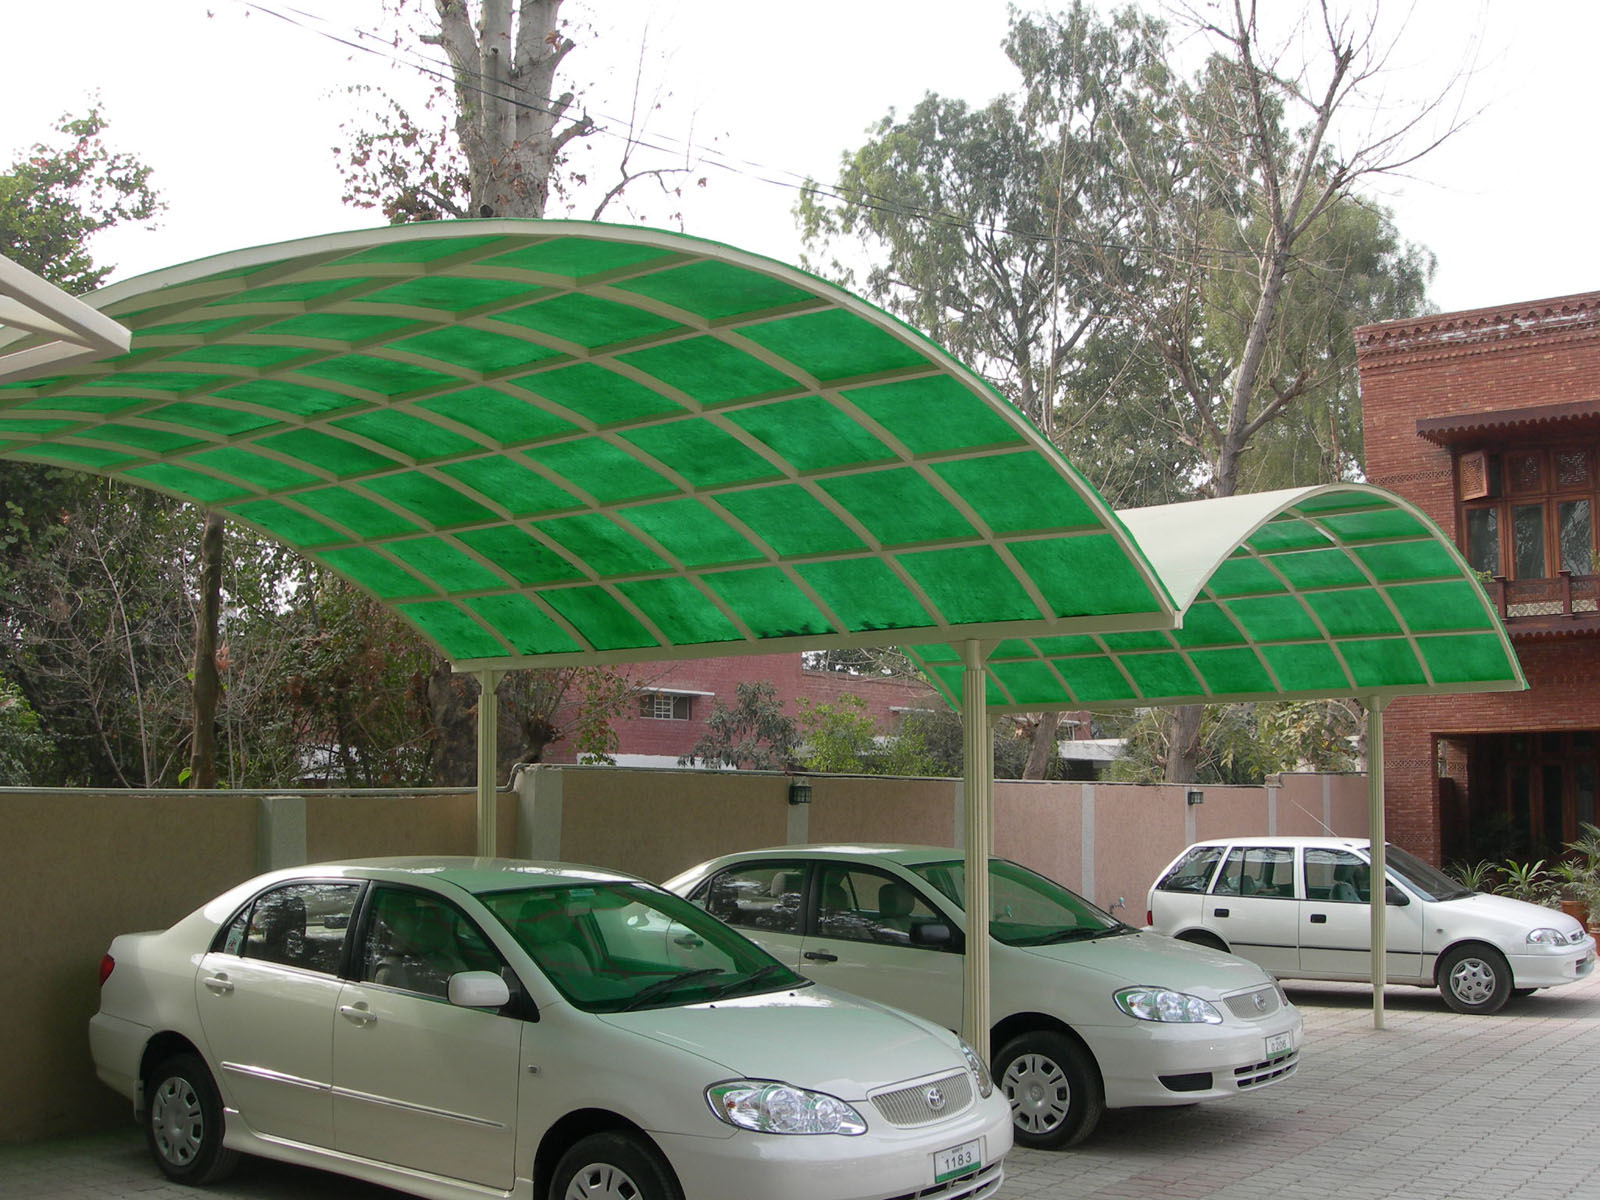 alu bayer sheds frame with productimage polycarbonate port morden qbbmttpcmrui shed china car carport awning alloy canopy